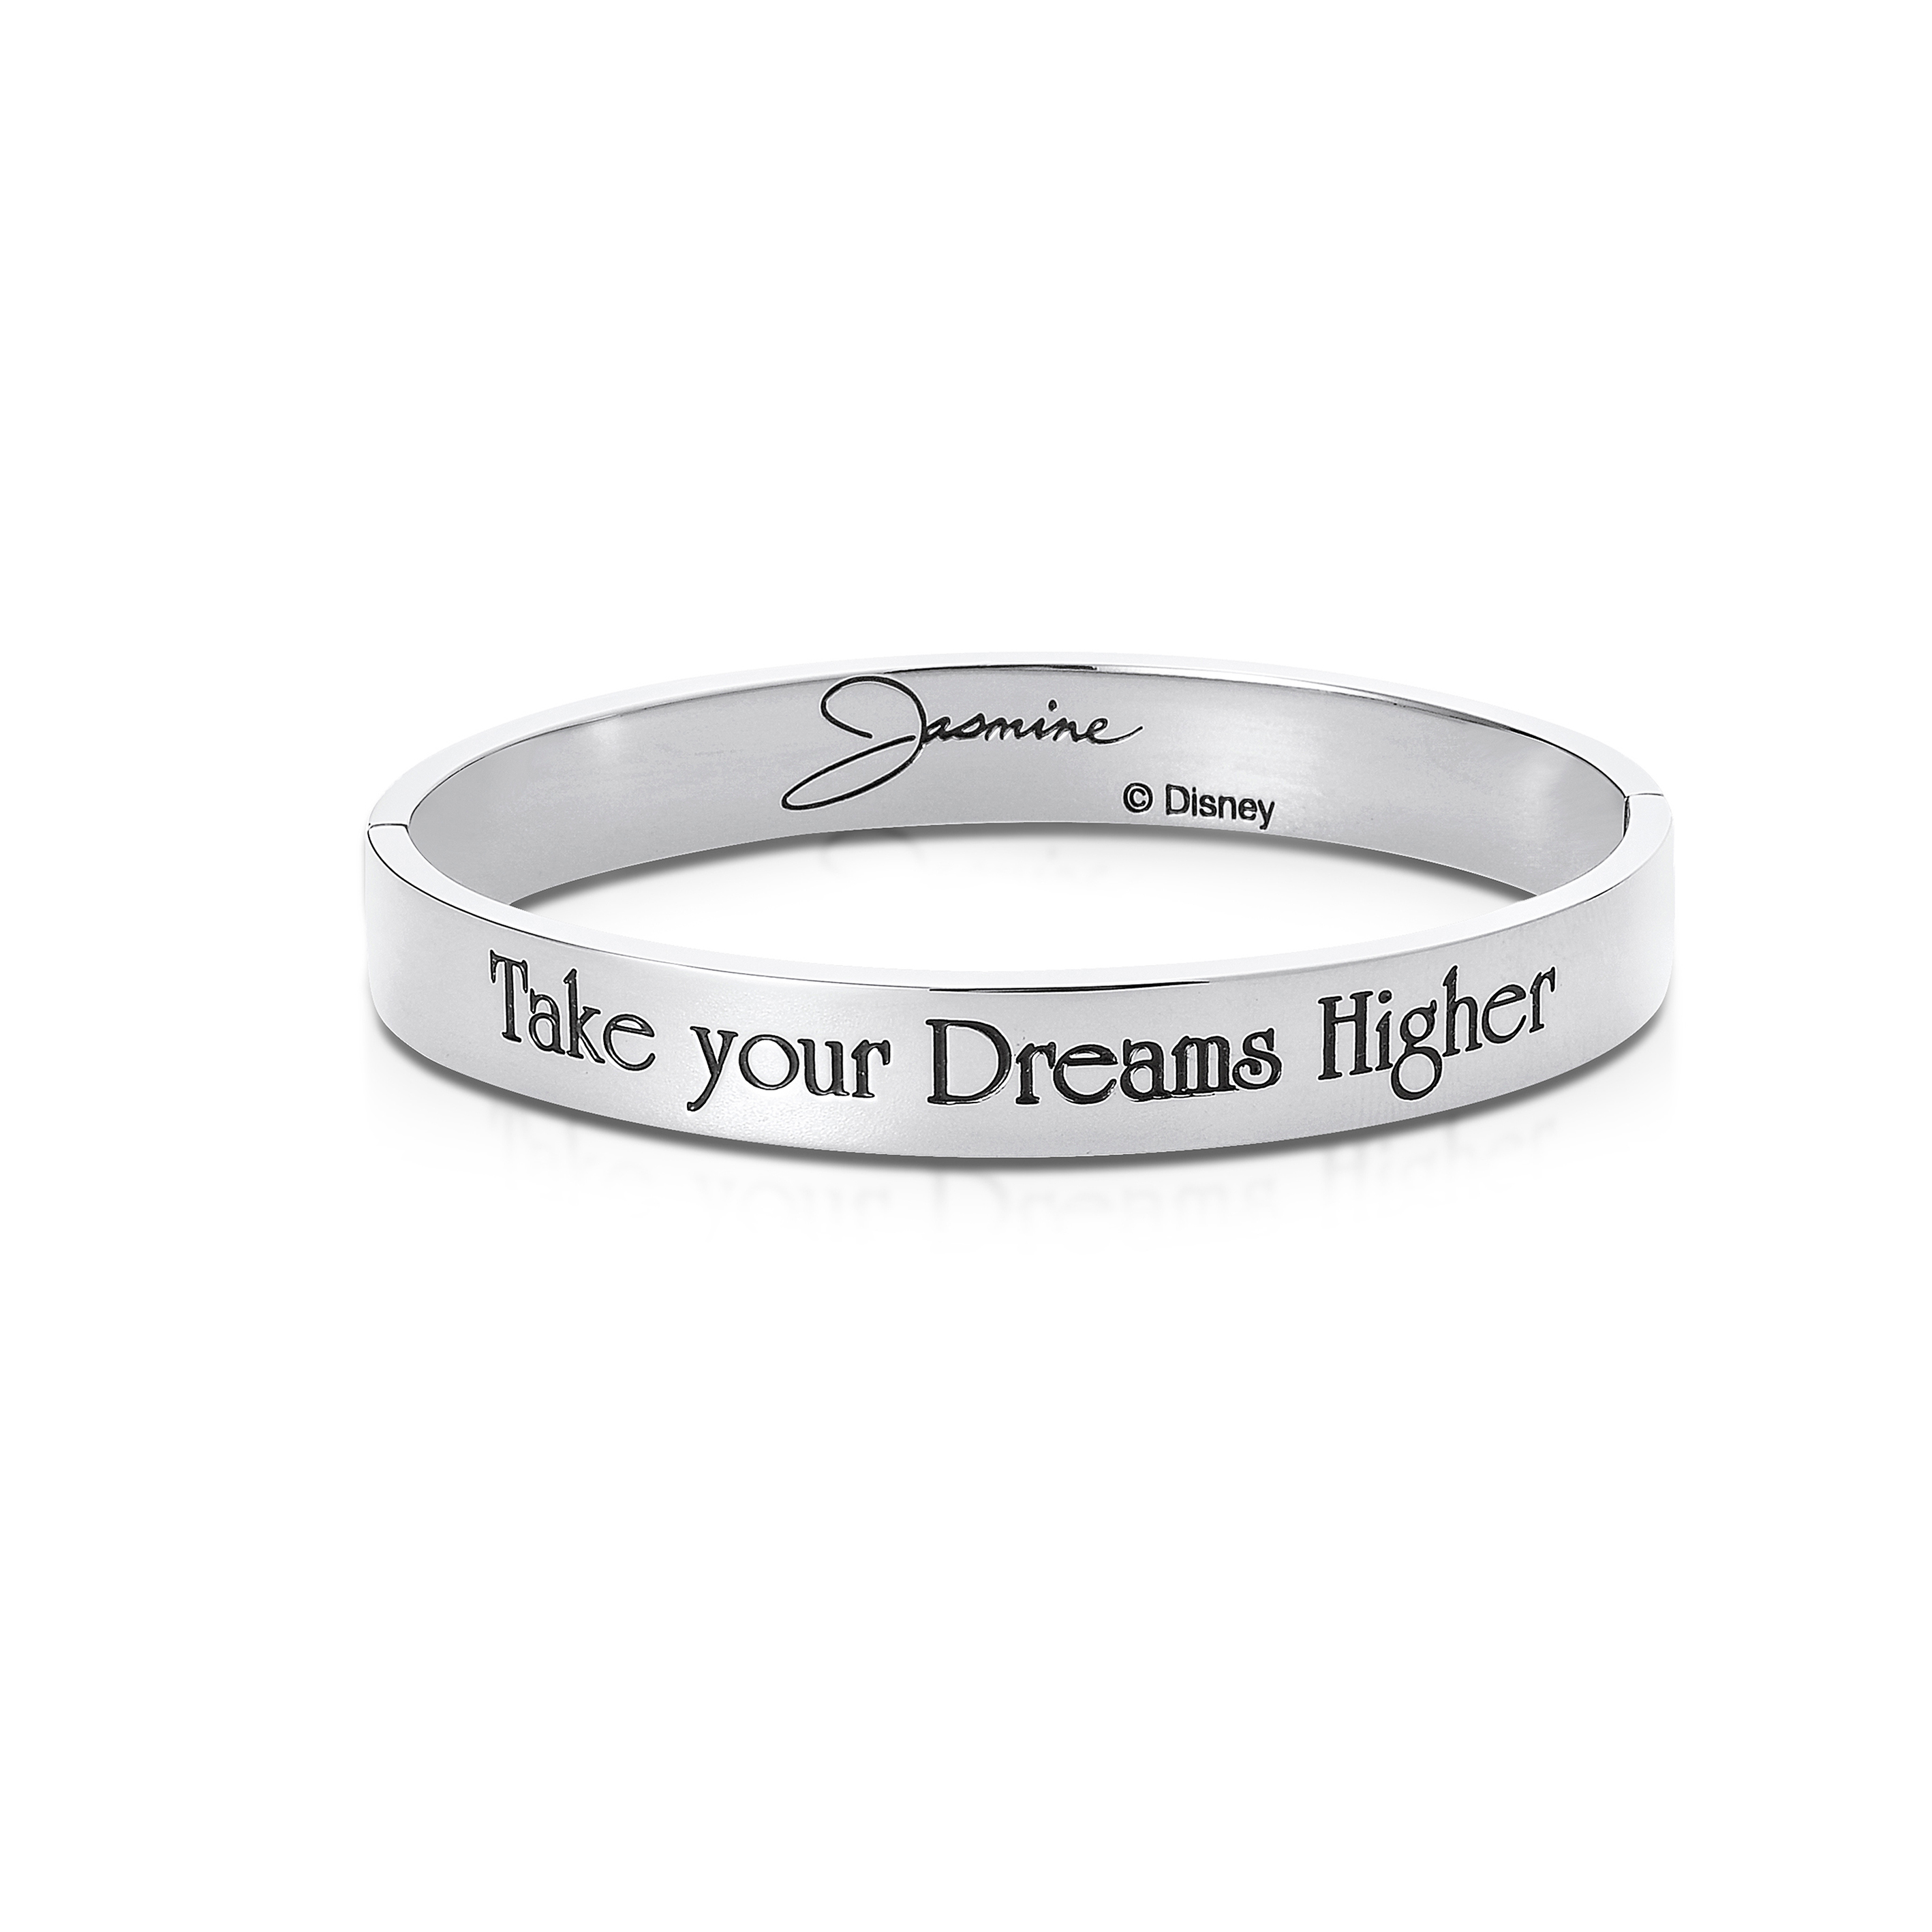 DISNEY Aladdin 'Take Your Dreams Higher' Princess Jasmine Bangle